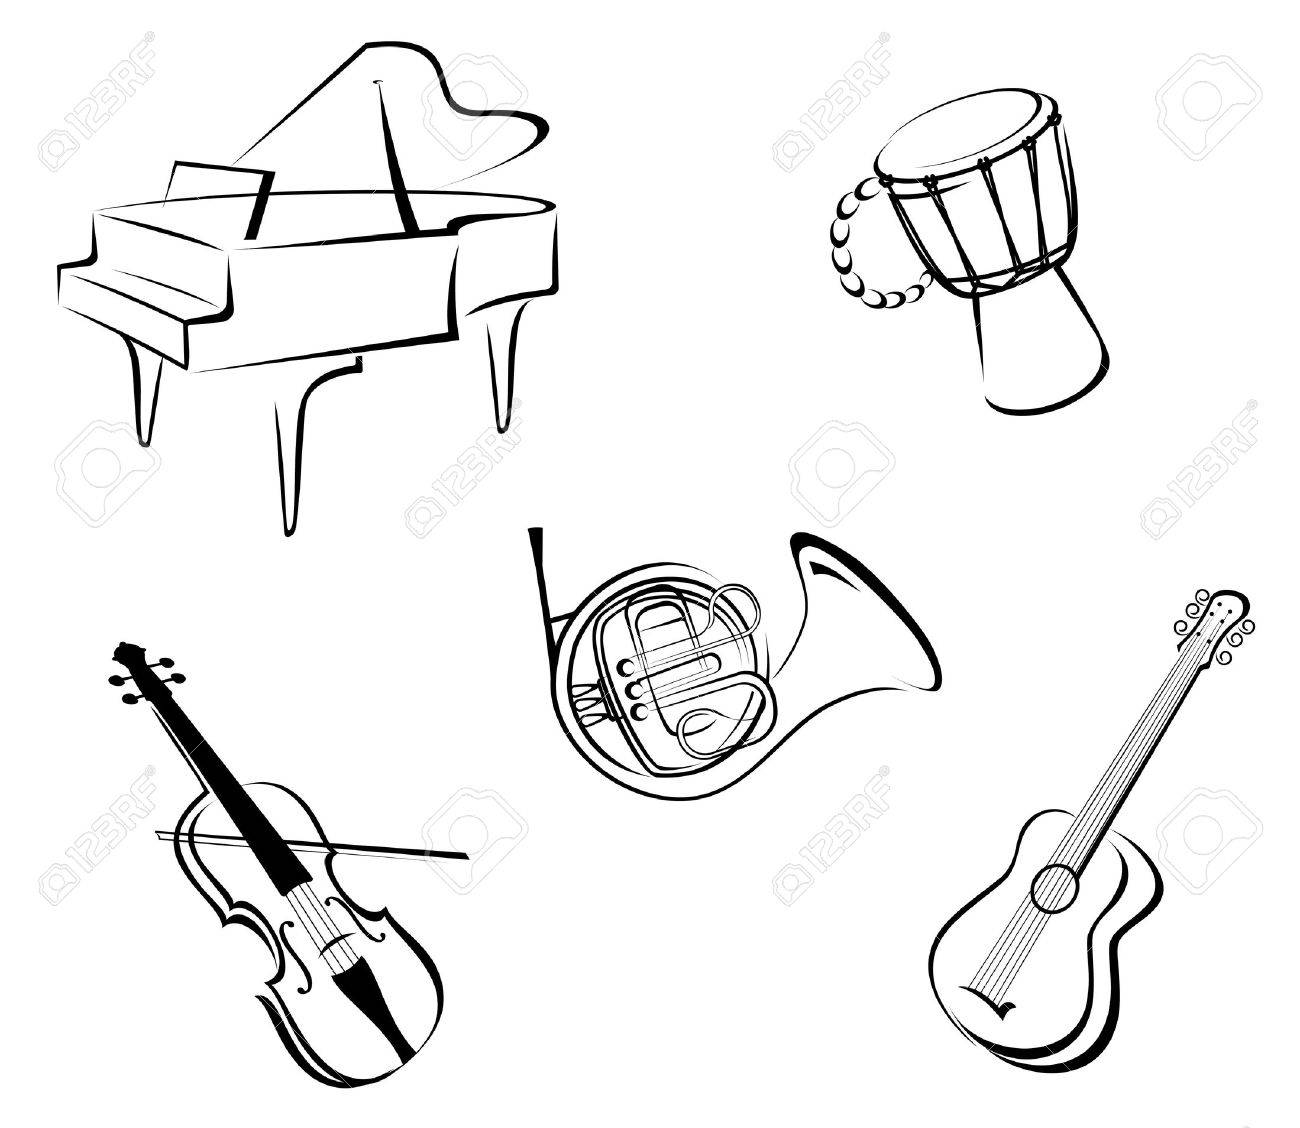 Set of musical instruments for music design Stock Vector - 10942348